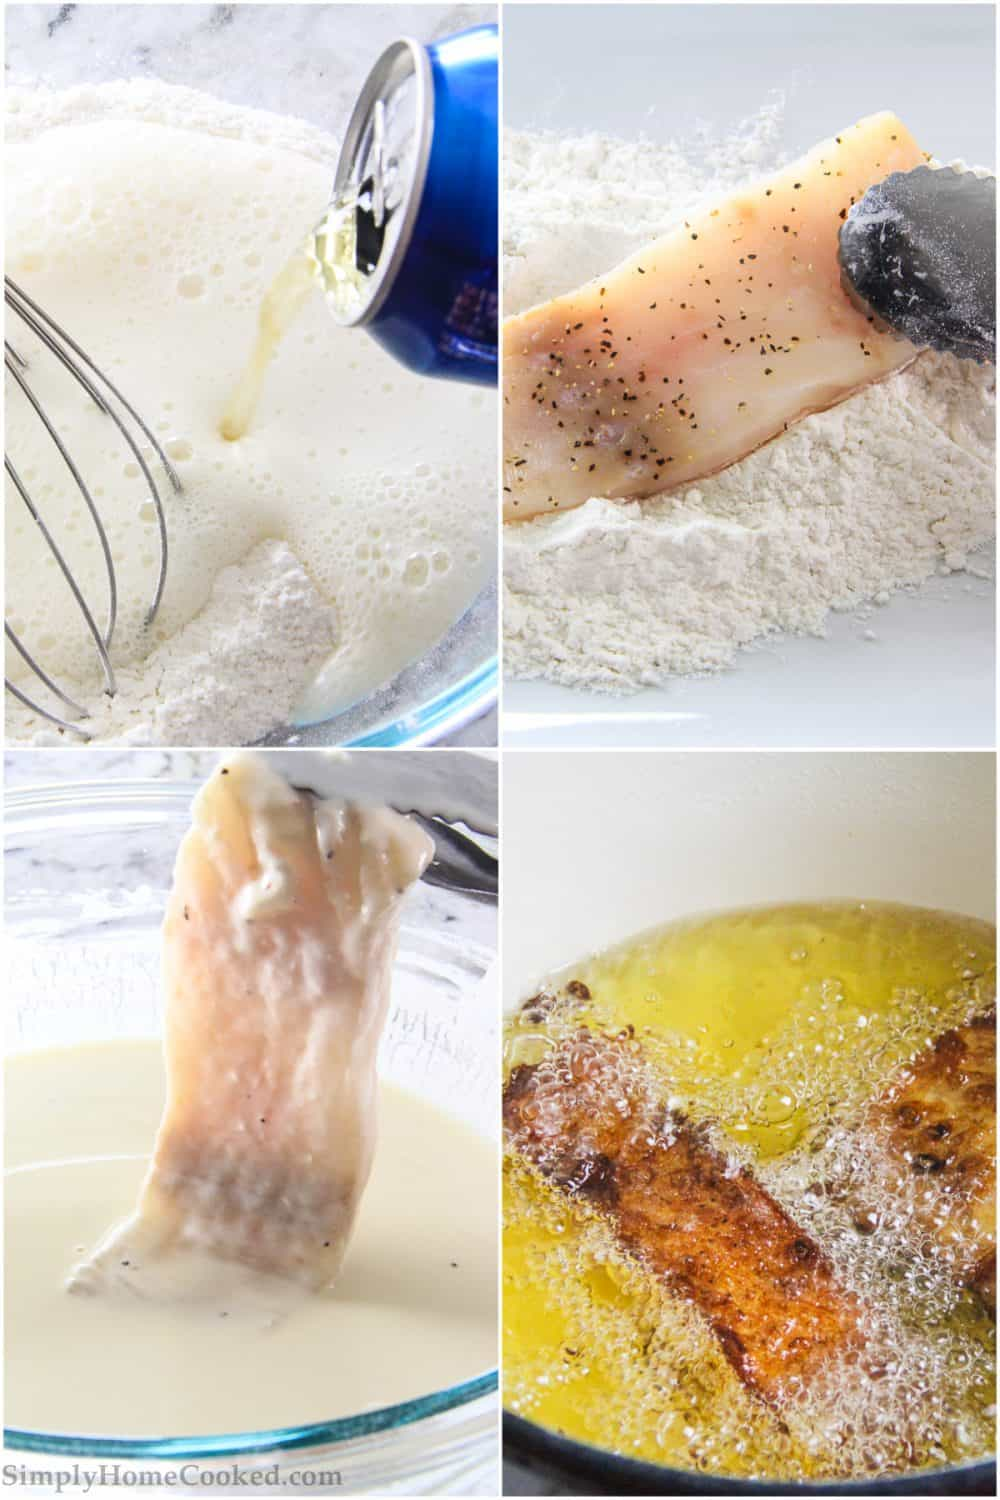 Step by step picture collage tutorial of preparing beer batter and cooking fish to create the beer battered cod